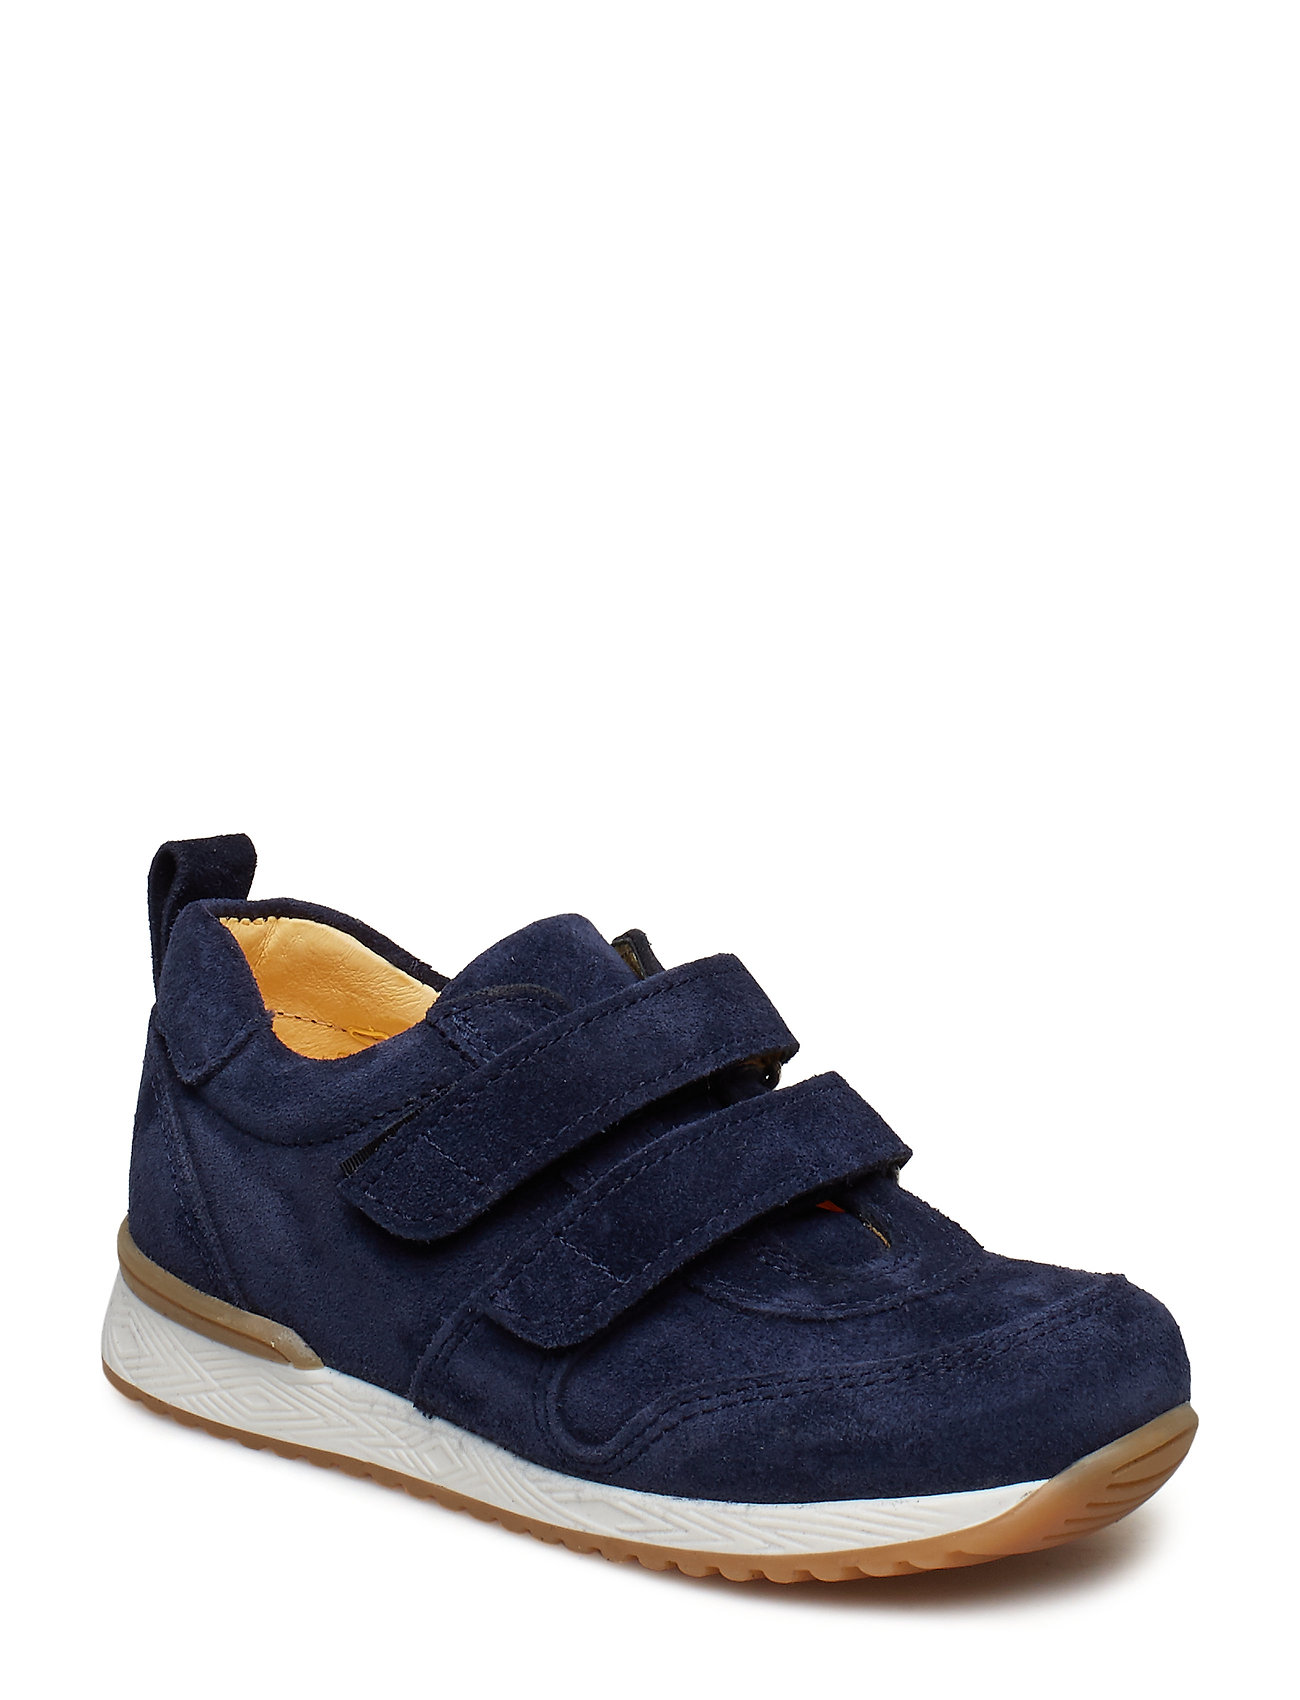 ANGULUS Shoes - flat - with velcro - 2197 NAVY